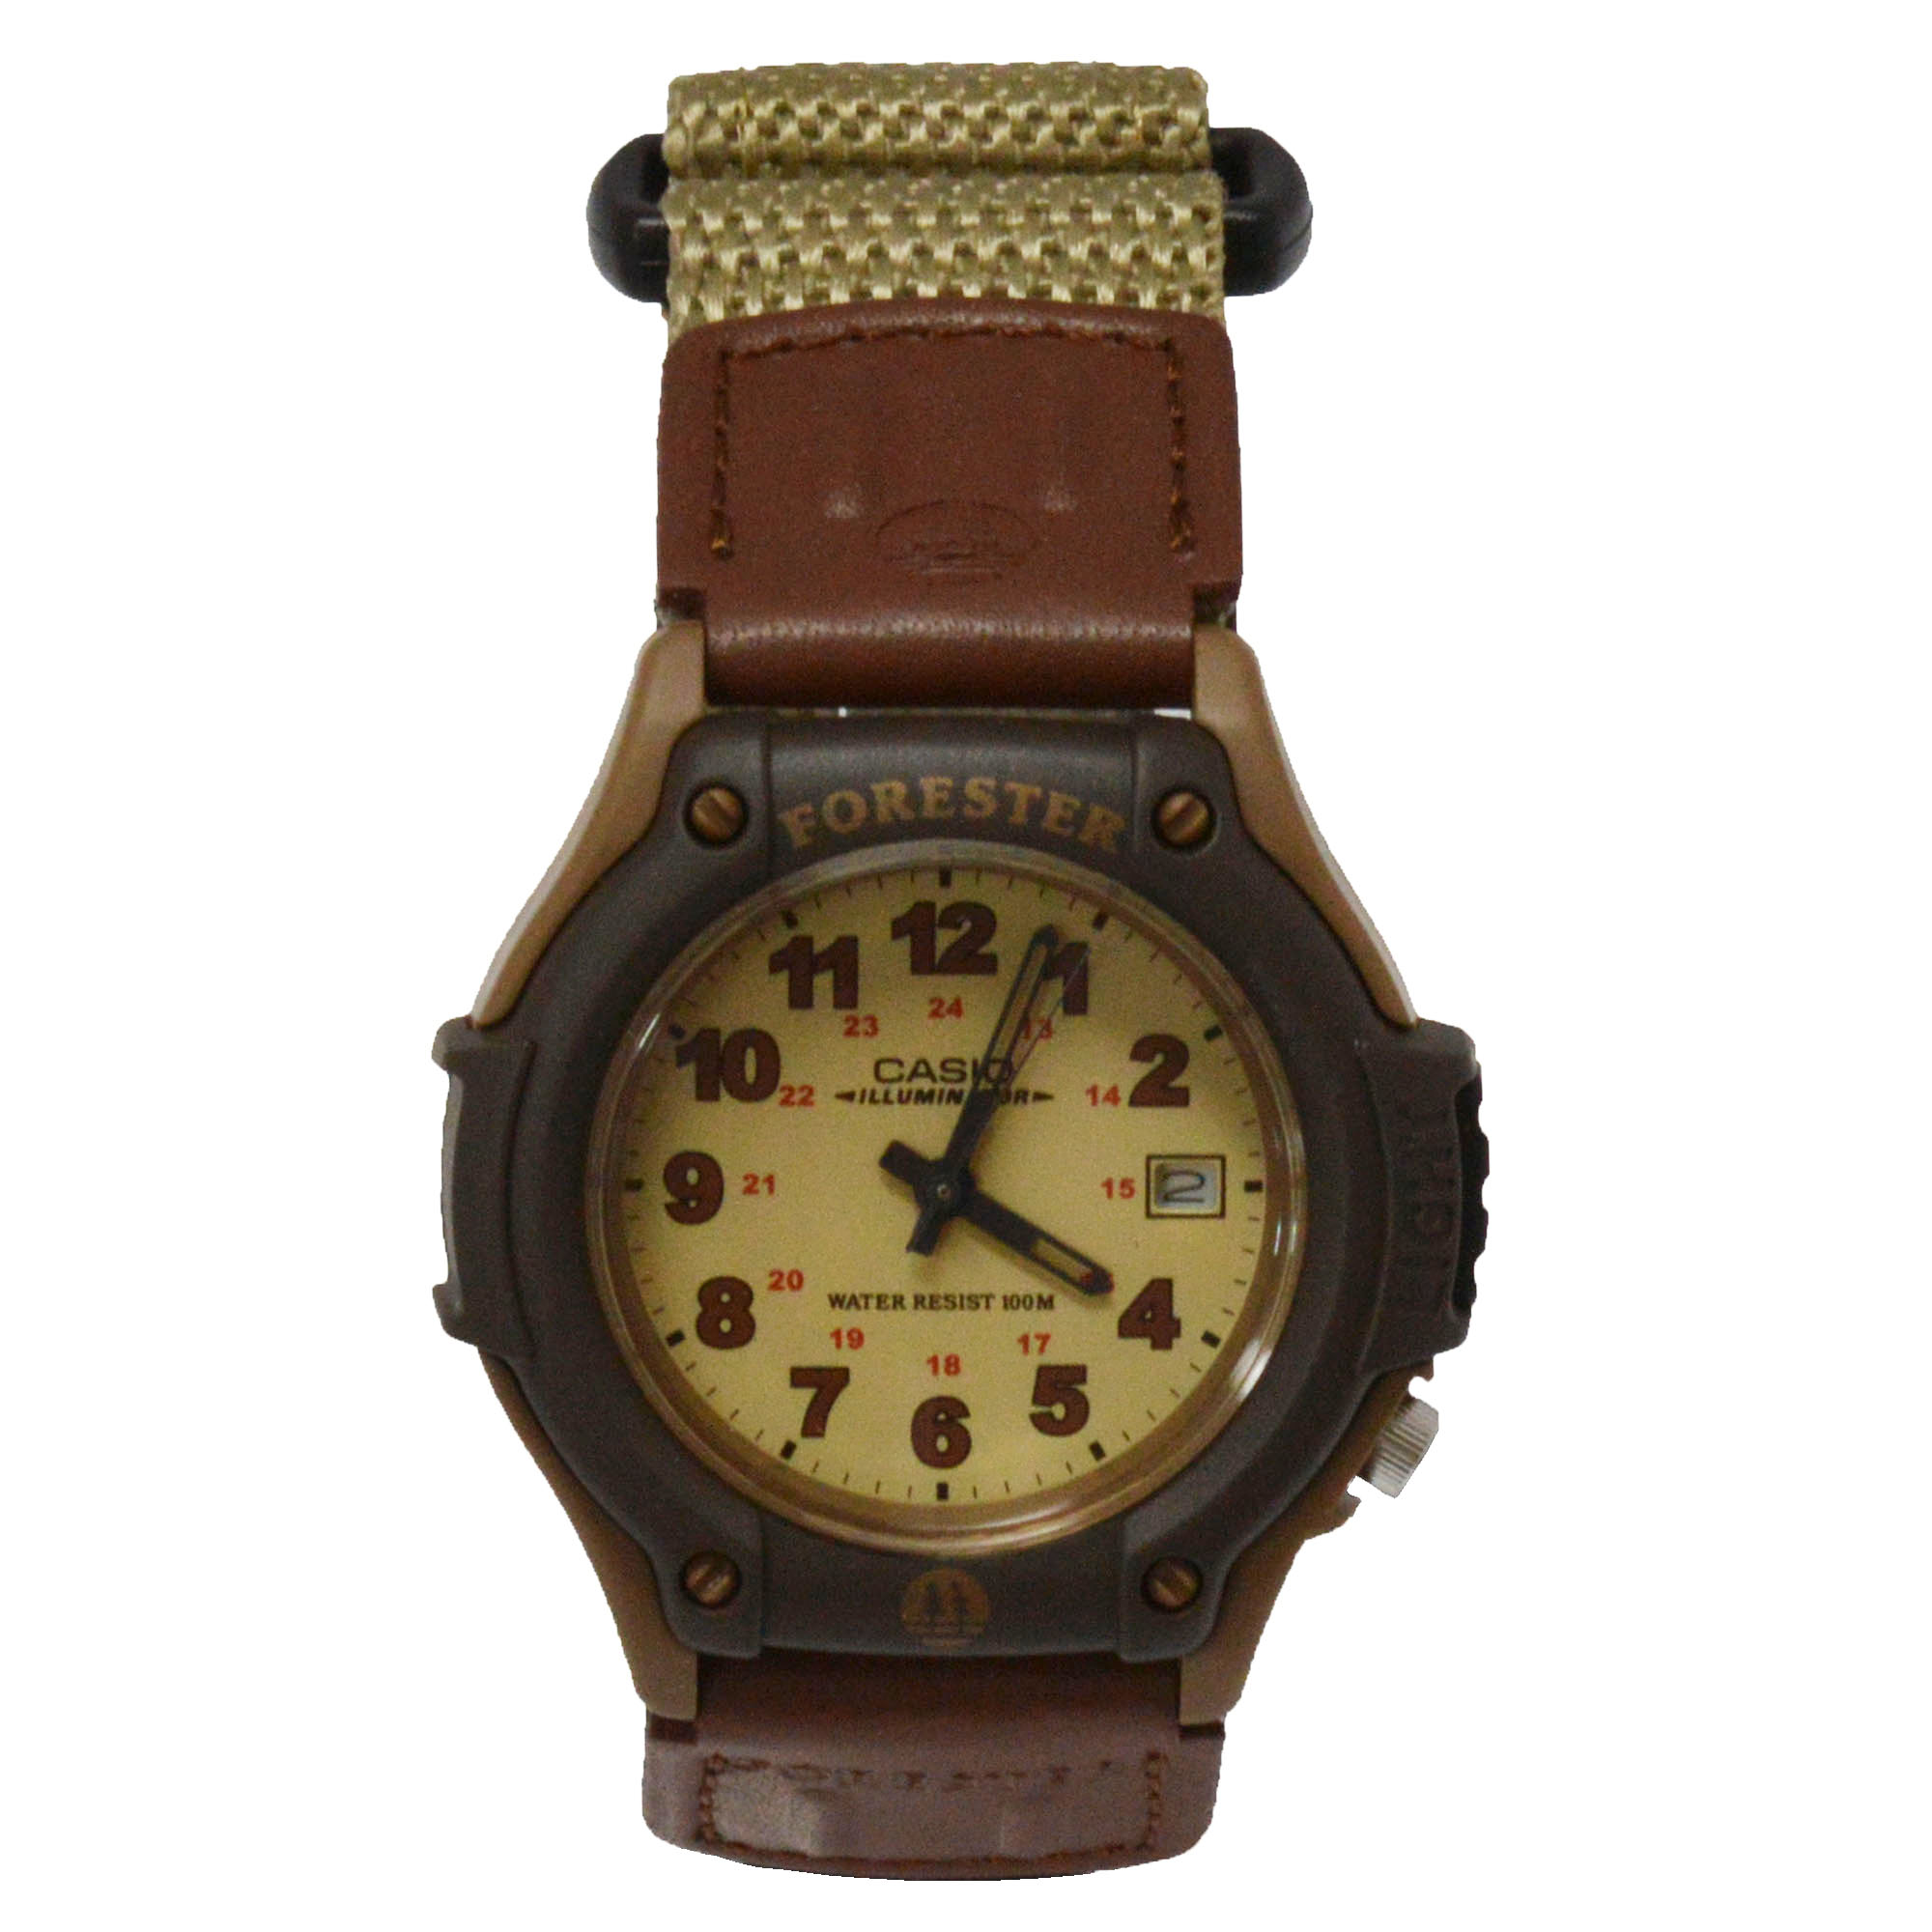 Casio Men's FT-500WVB-5BV Forester Nylon Illuminated Analog Sport Watch w/ Date at Sears.com